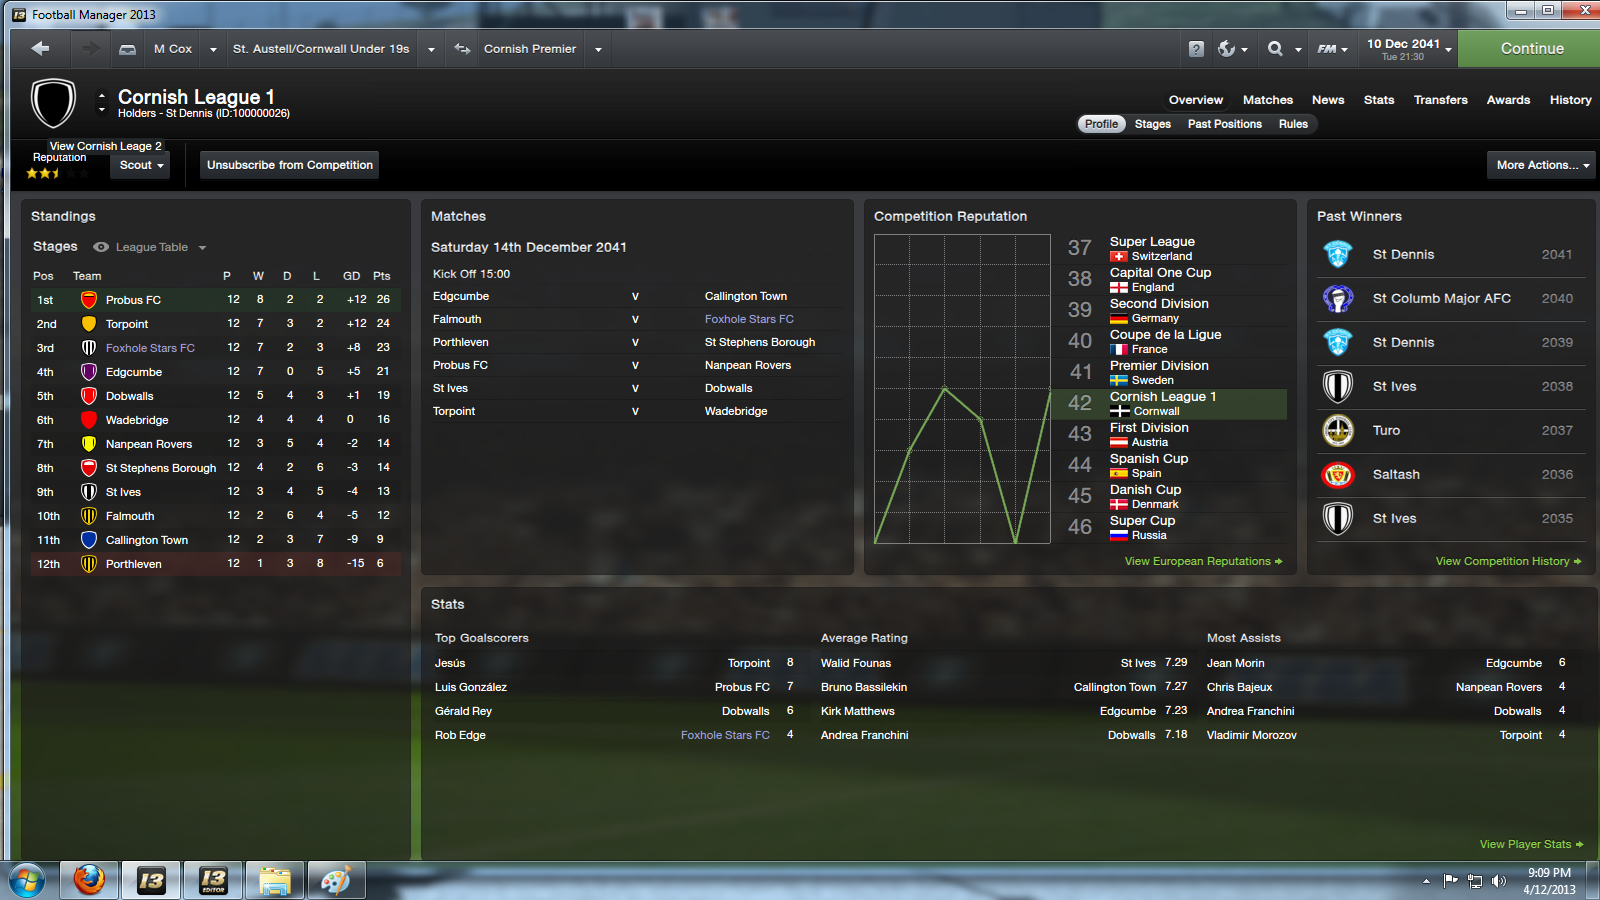 football manager 2013 editor guide